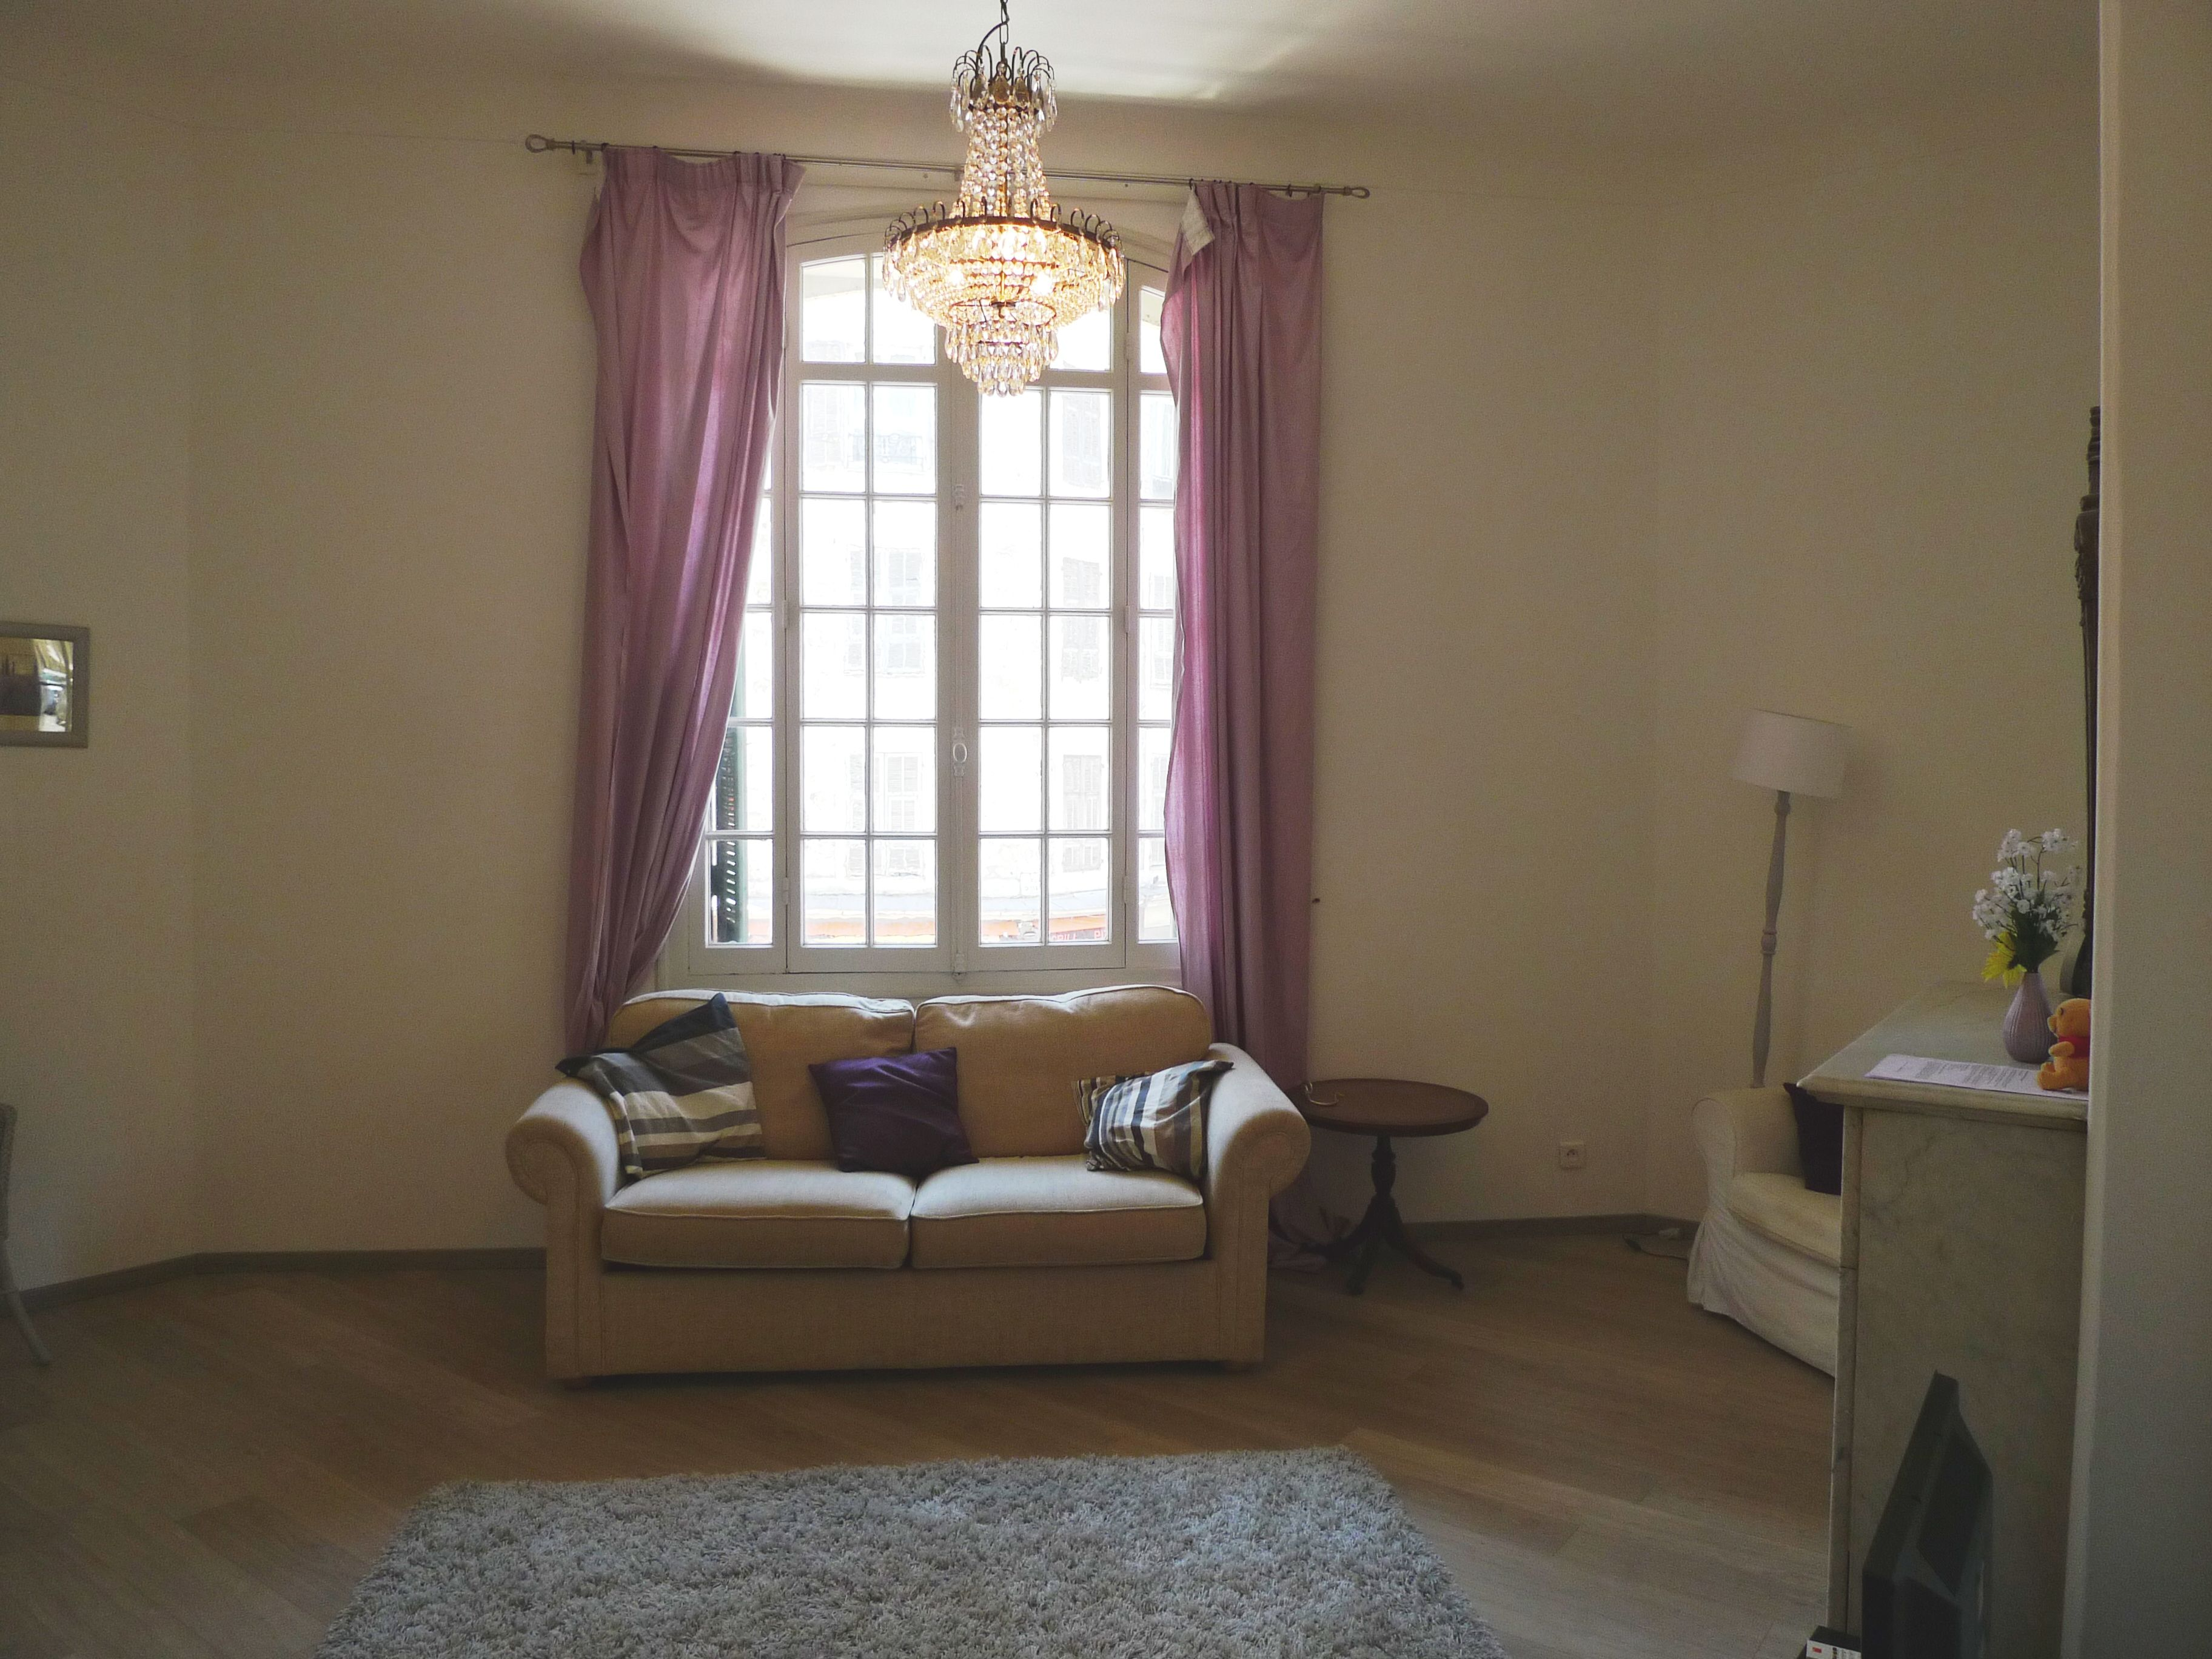 Cute 1 Bedroom Apartment In The Centre Of Nice Property Ref Hgard Enquire For Details 0033 0 4 93 With Images 1 Bedroom Apartment Renting A House Home Decor